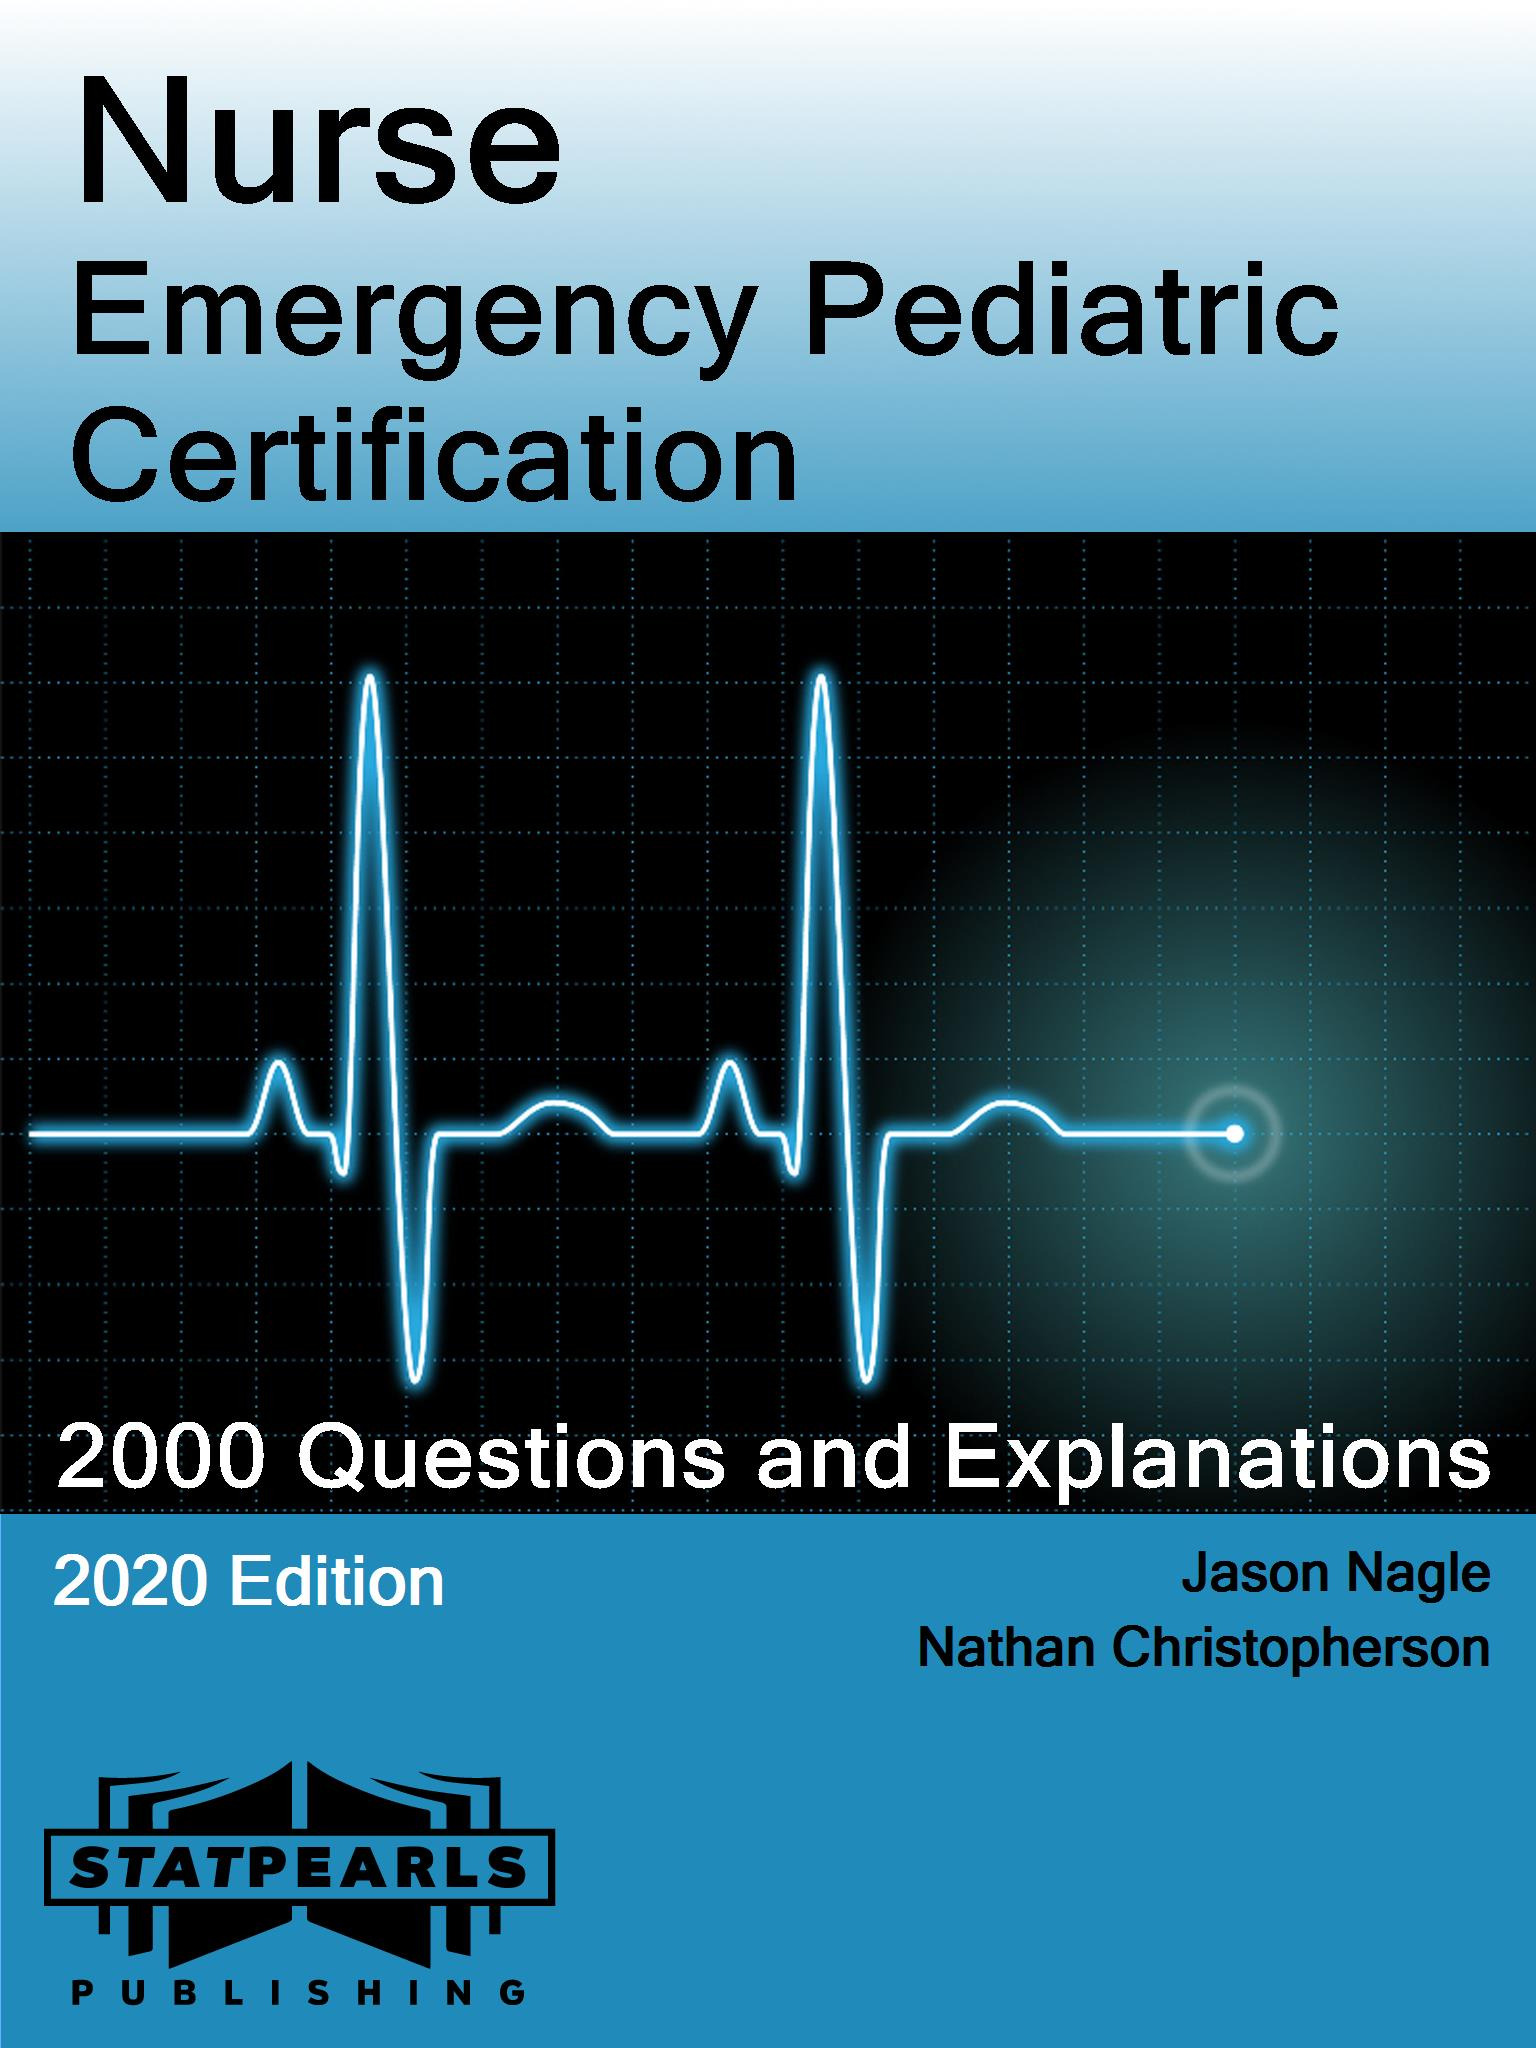 Nurse Emergency Pediatric Certification